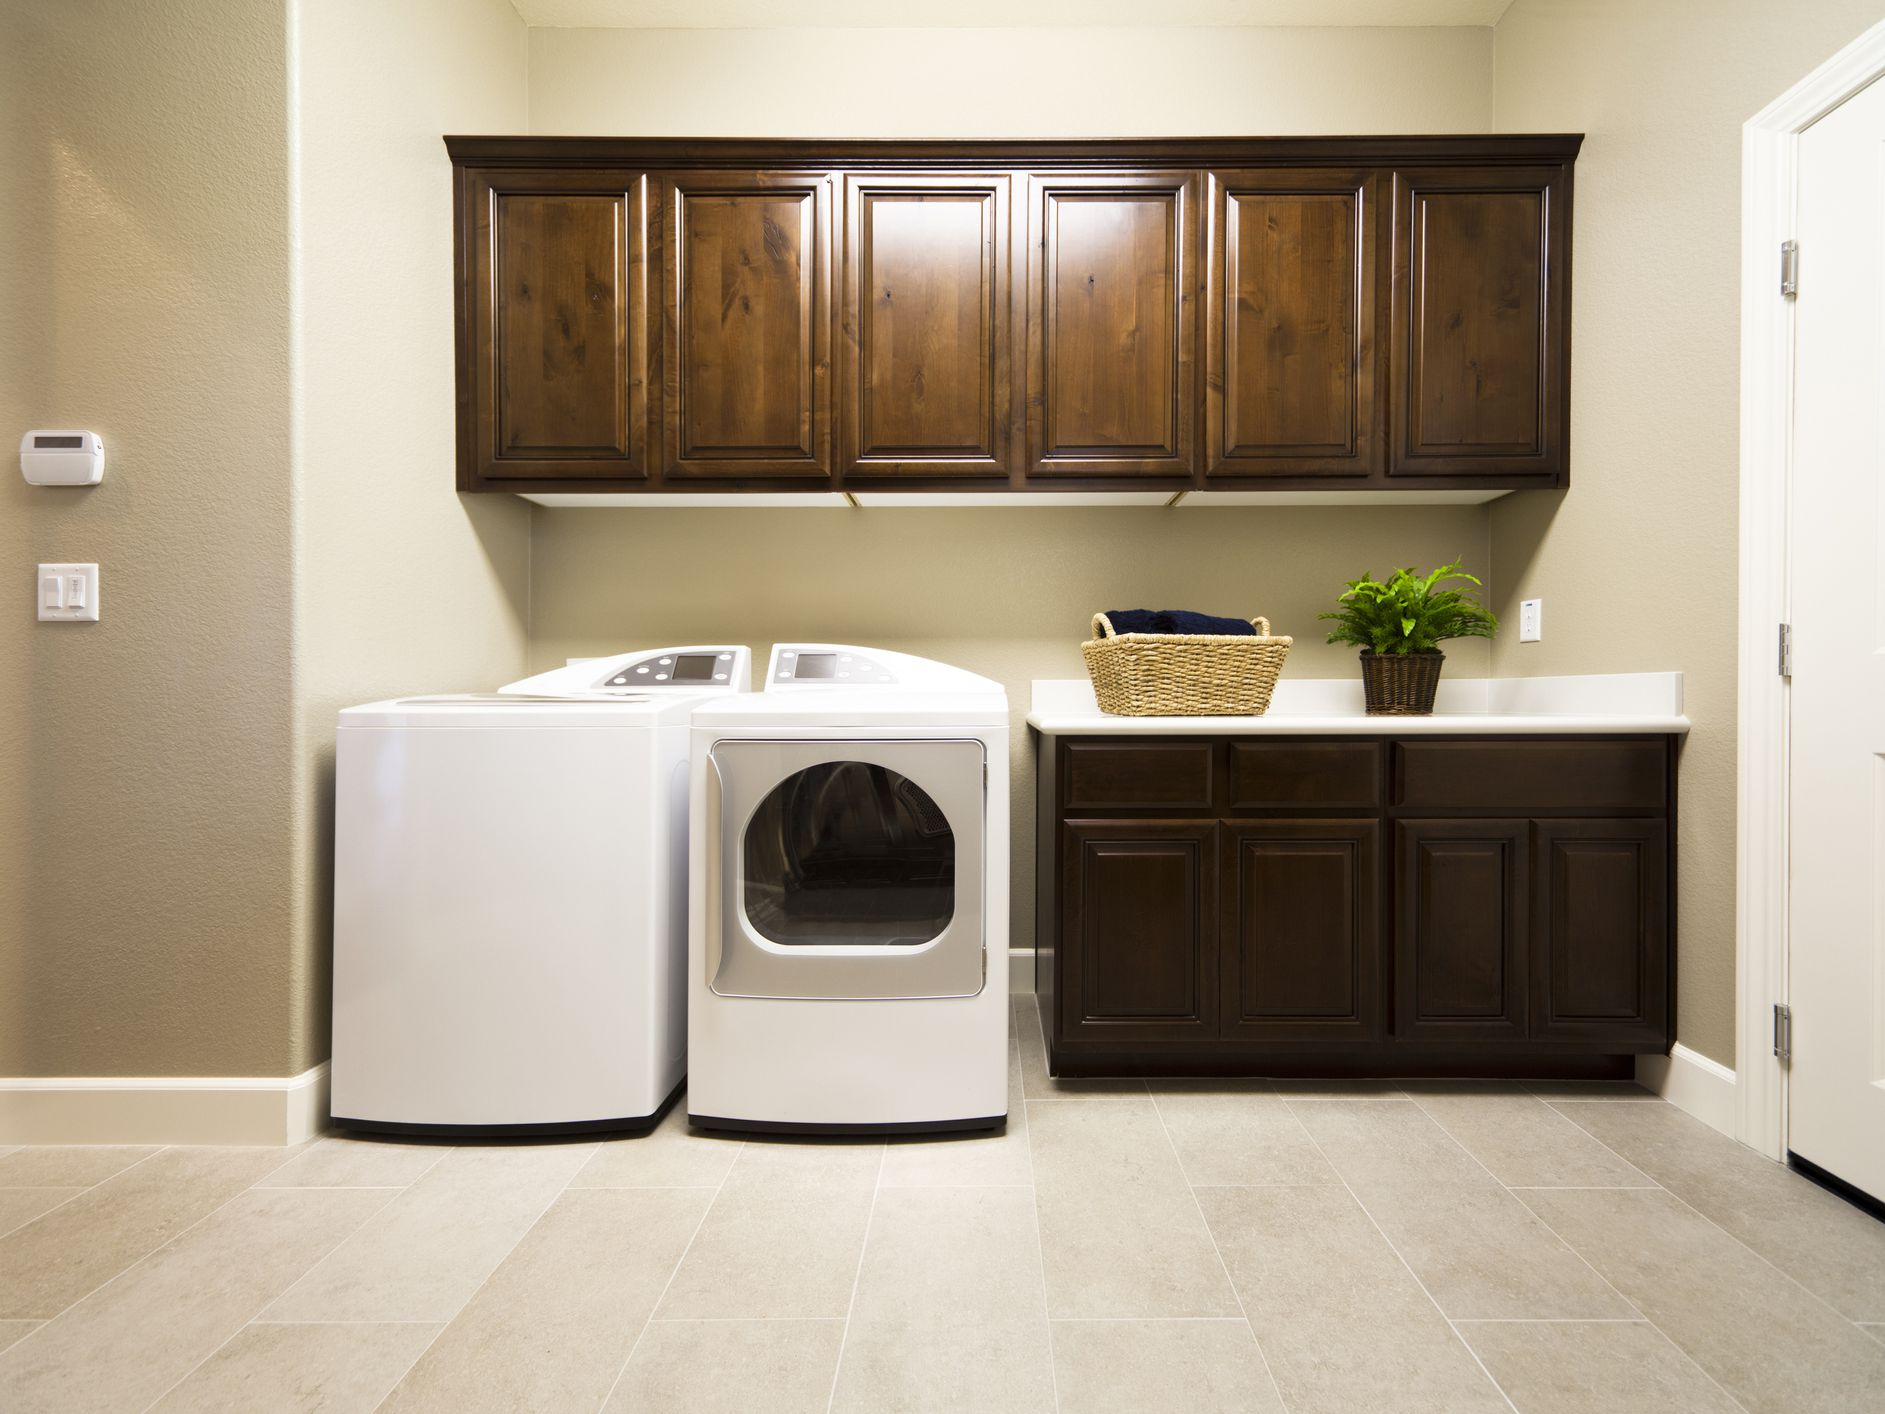 Laundry Room Cabinet Options